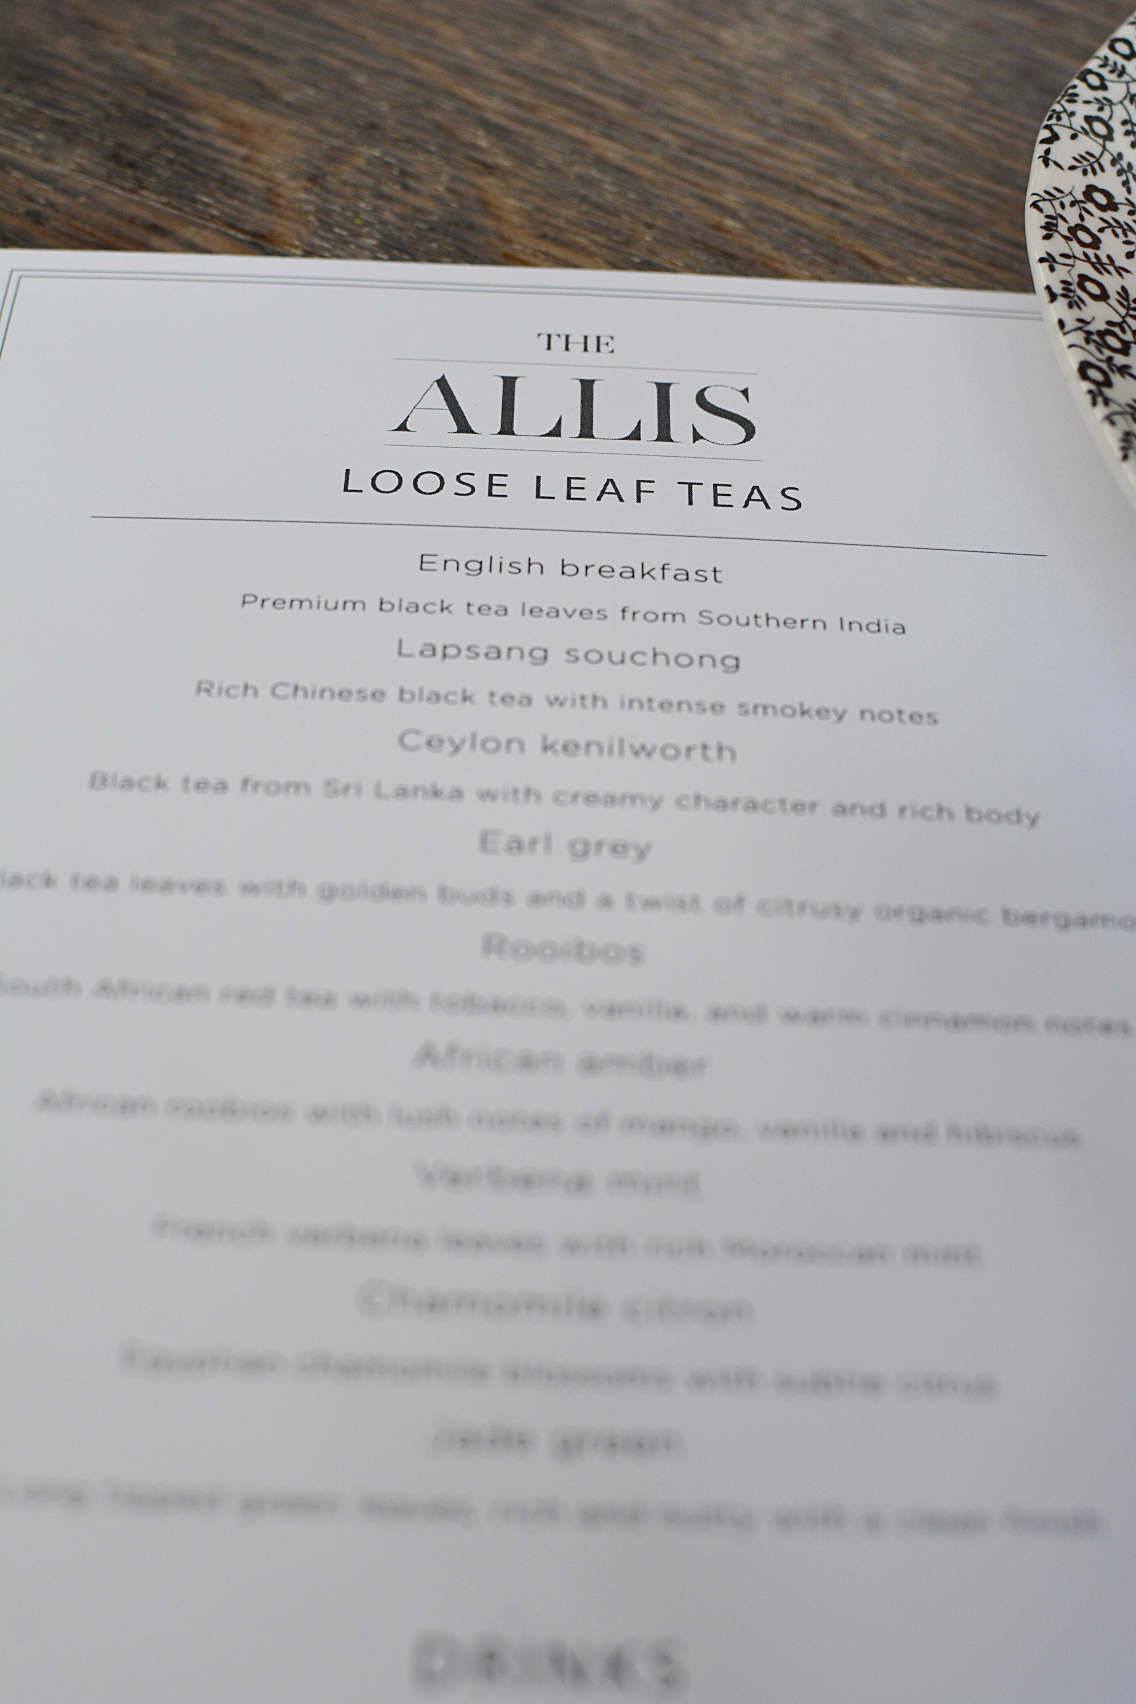 Afternoon Tea at The Allis Soho House 2